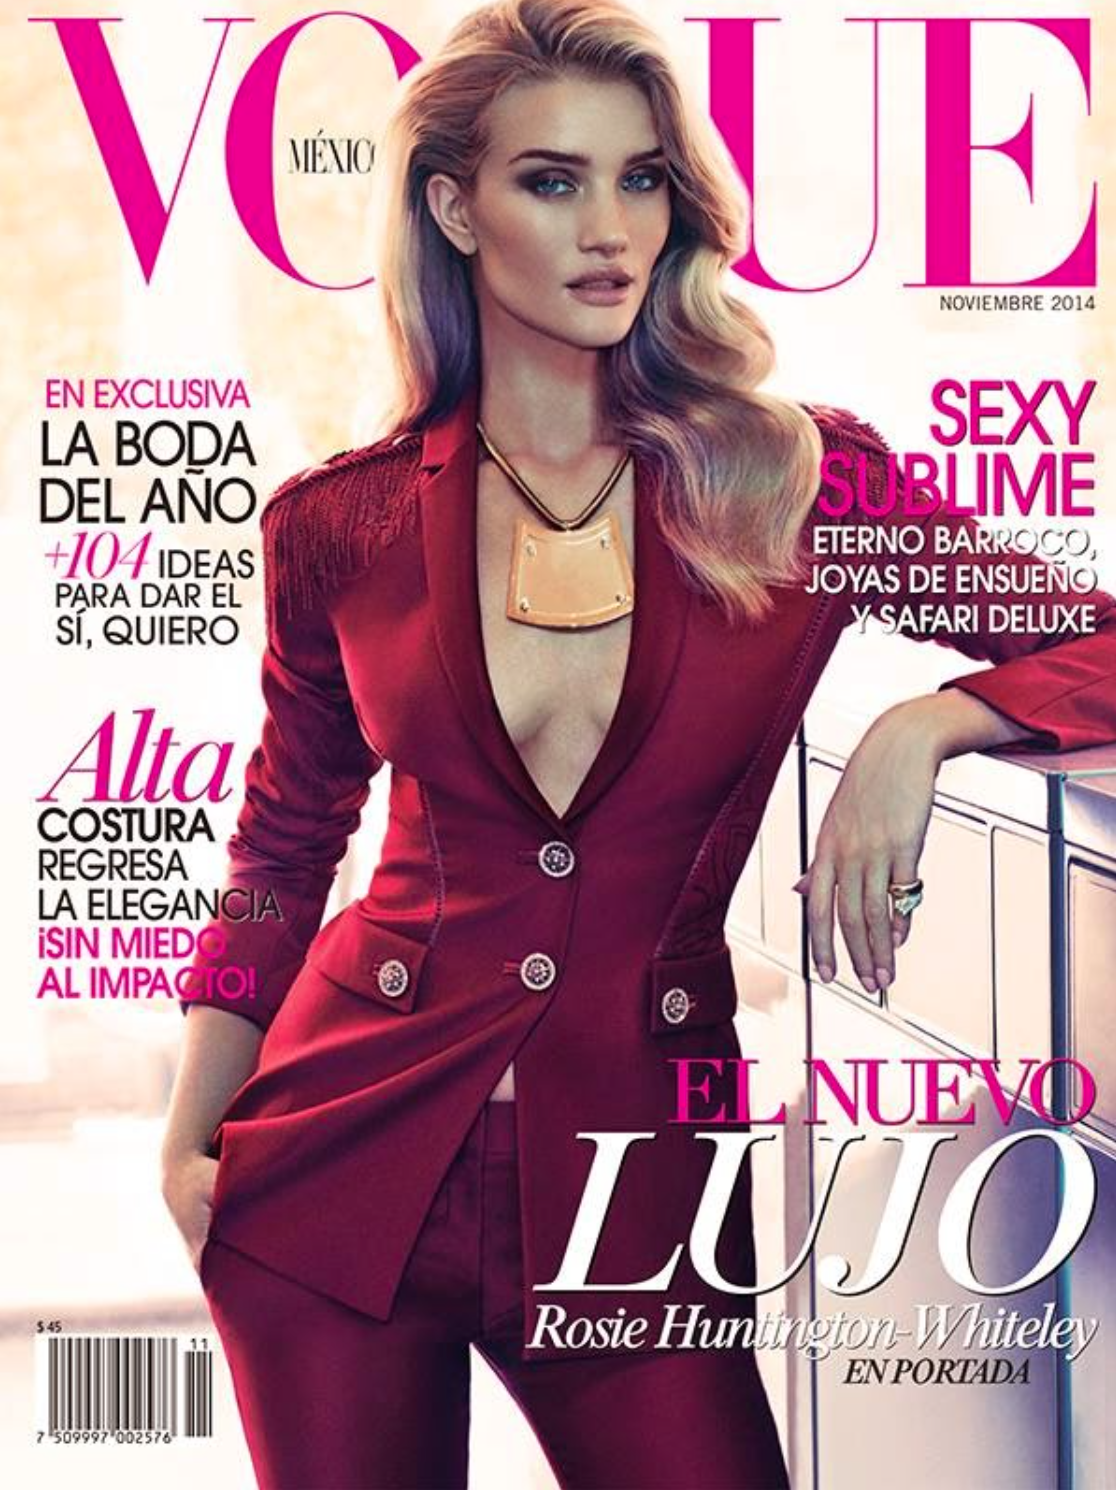 Rosie Huntington for Vogue Mexico